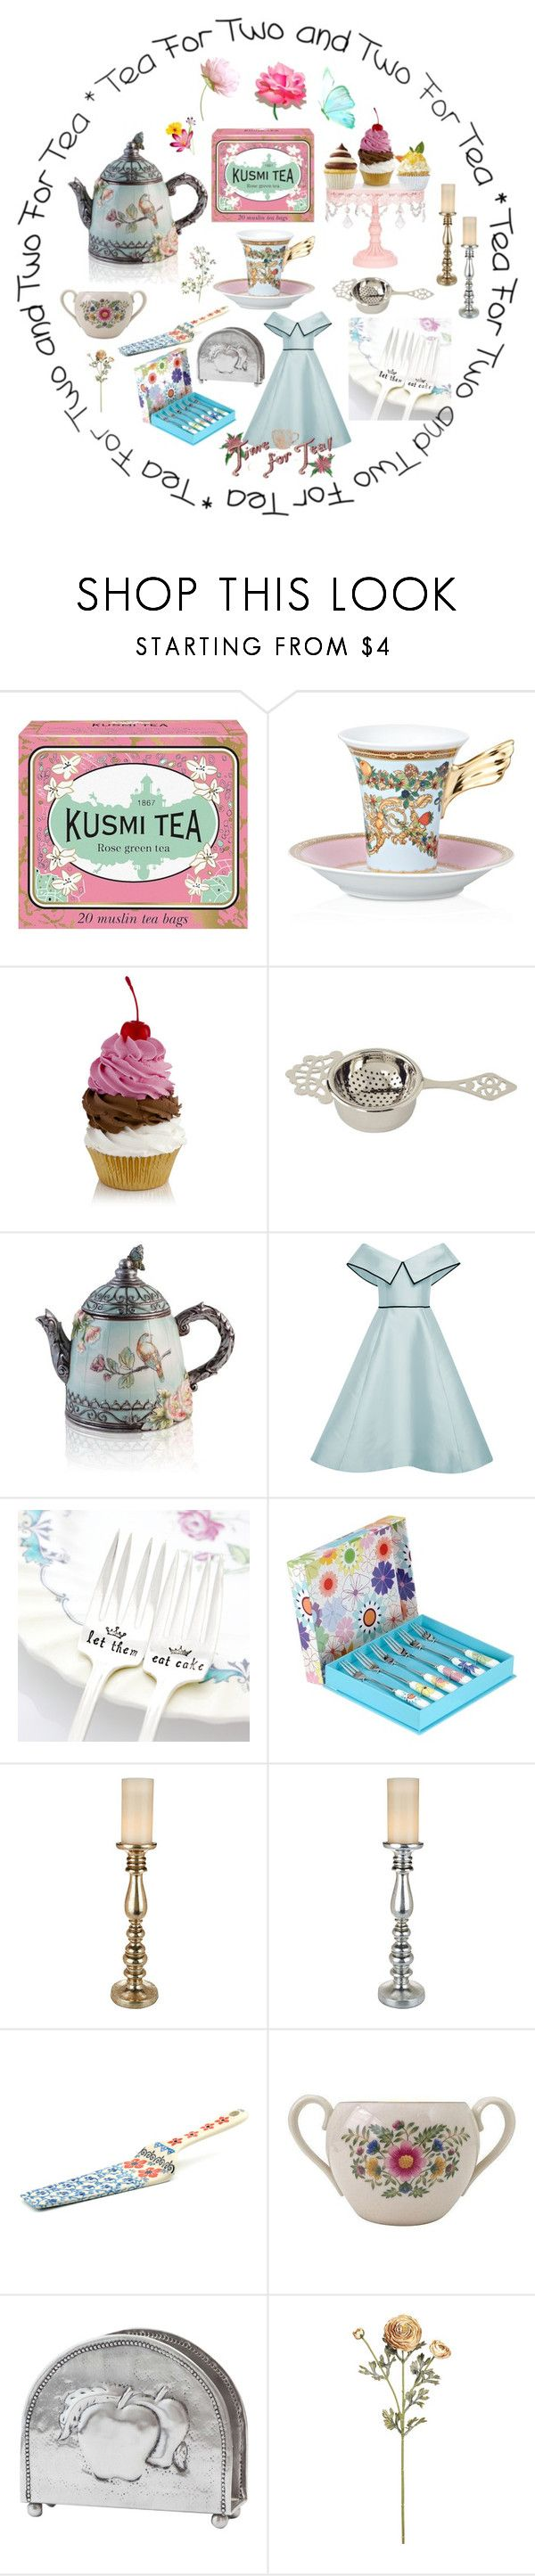 """Tea Time"" by joalustrousjewellery ❤ liked on Polyvore featuring Kusmi Tea, Rosenthal, Elizabeth Kennedy, Milk + Honey, Portmeirion, Bunzlau Castle, Lenox and Old Dutch"